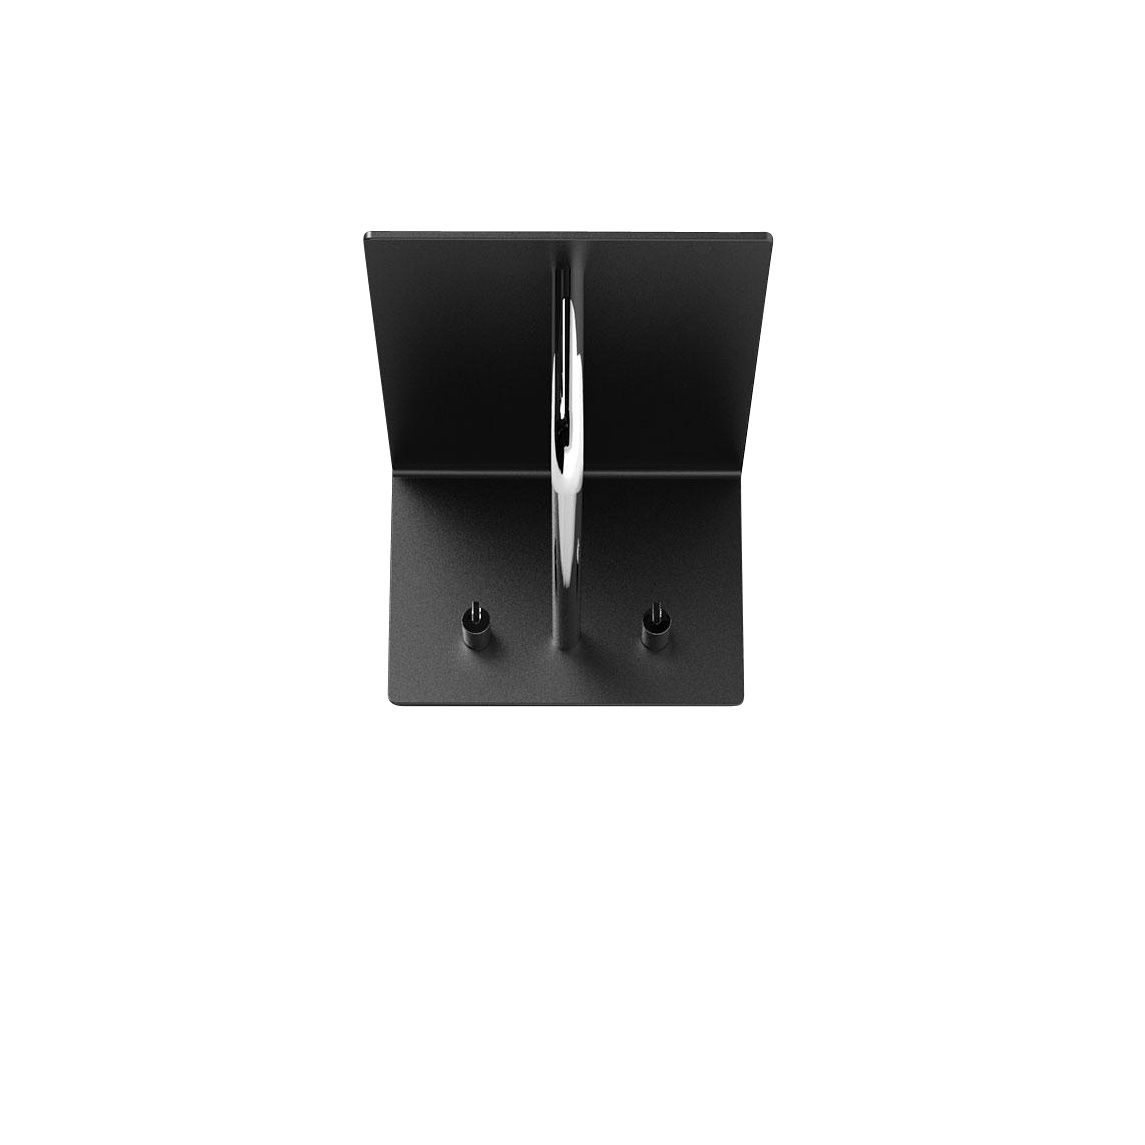 unu wandgarderobe mit 2 haken stange frost garderoben m bel. Black Bedroom Furniture Sets. Home Design Ideas